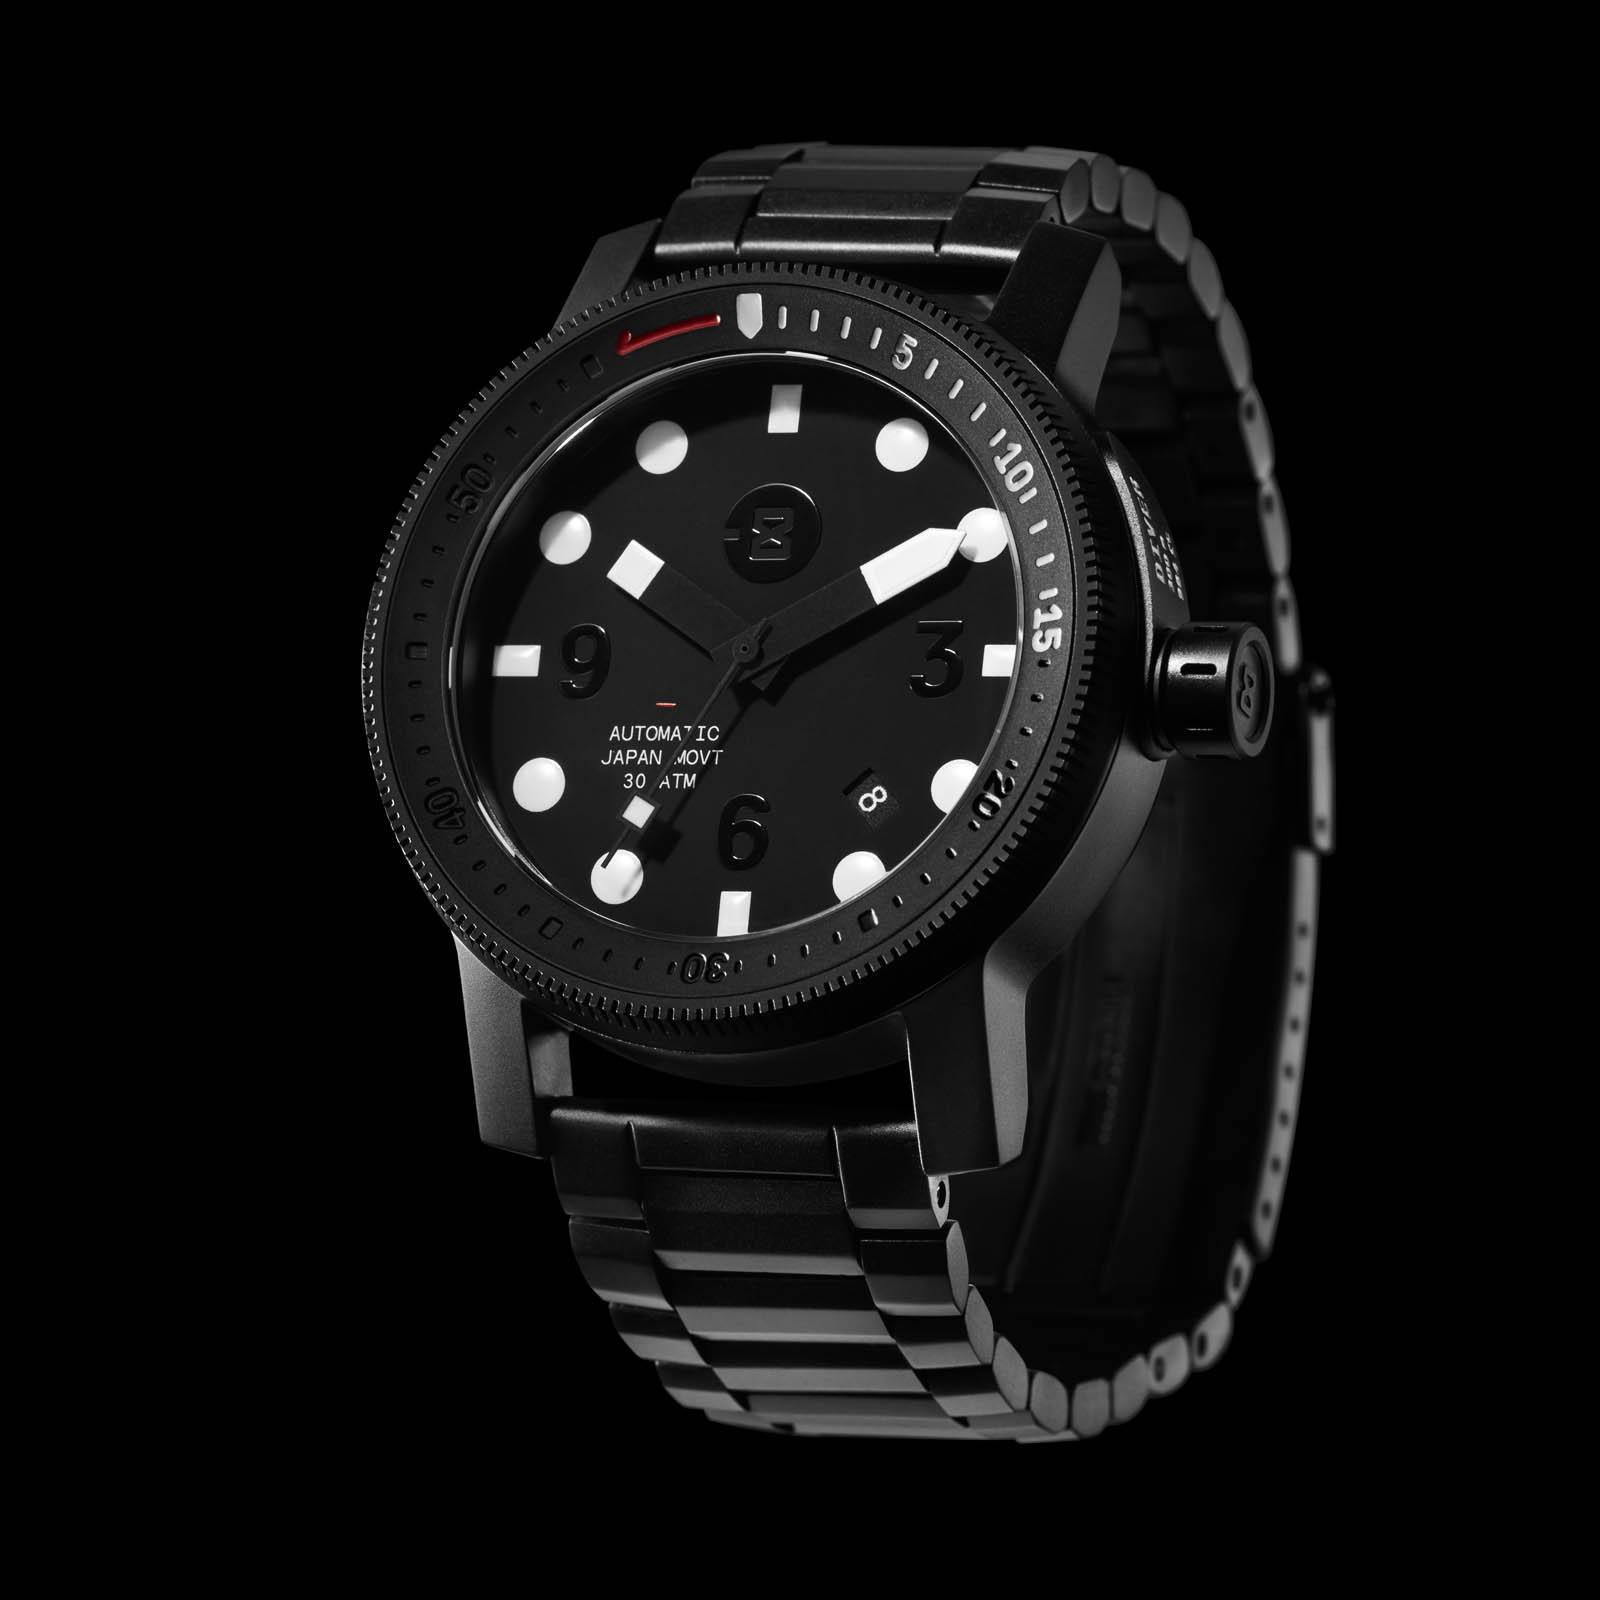 MINUS-8 DIVER WATCH